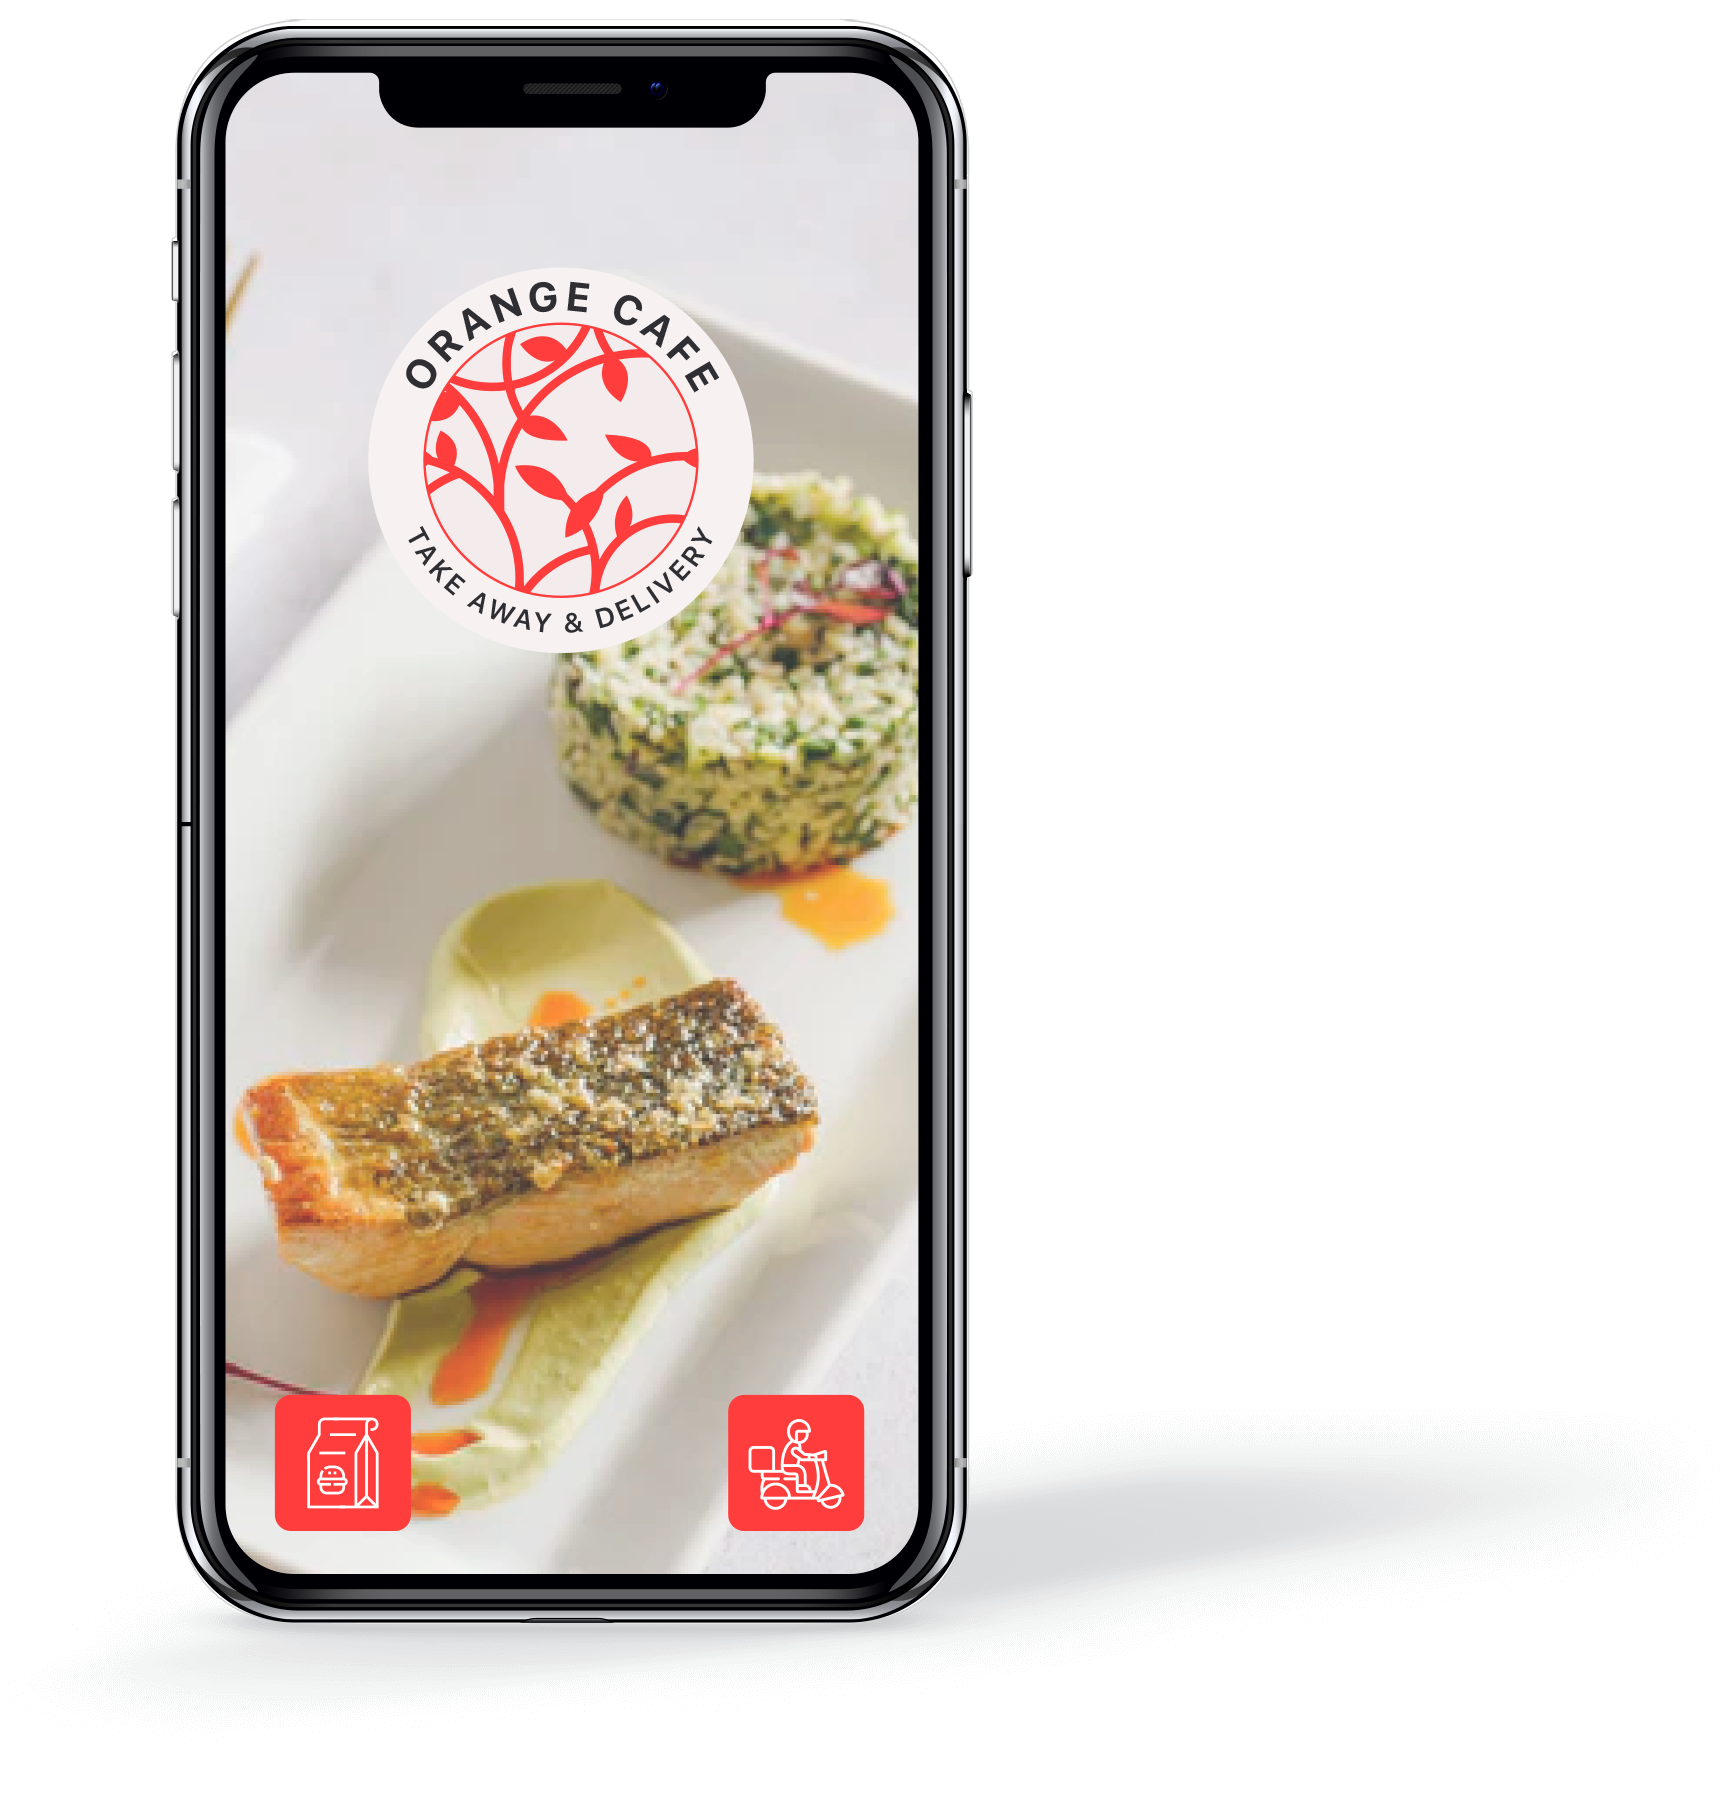 white label food ordering app for restaurant